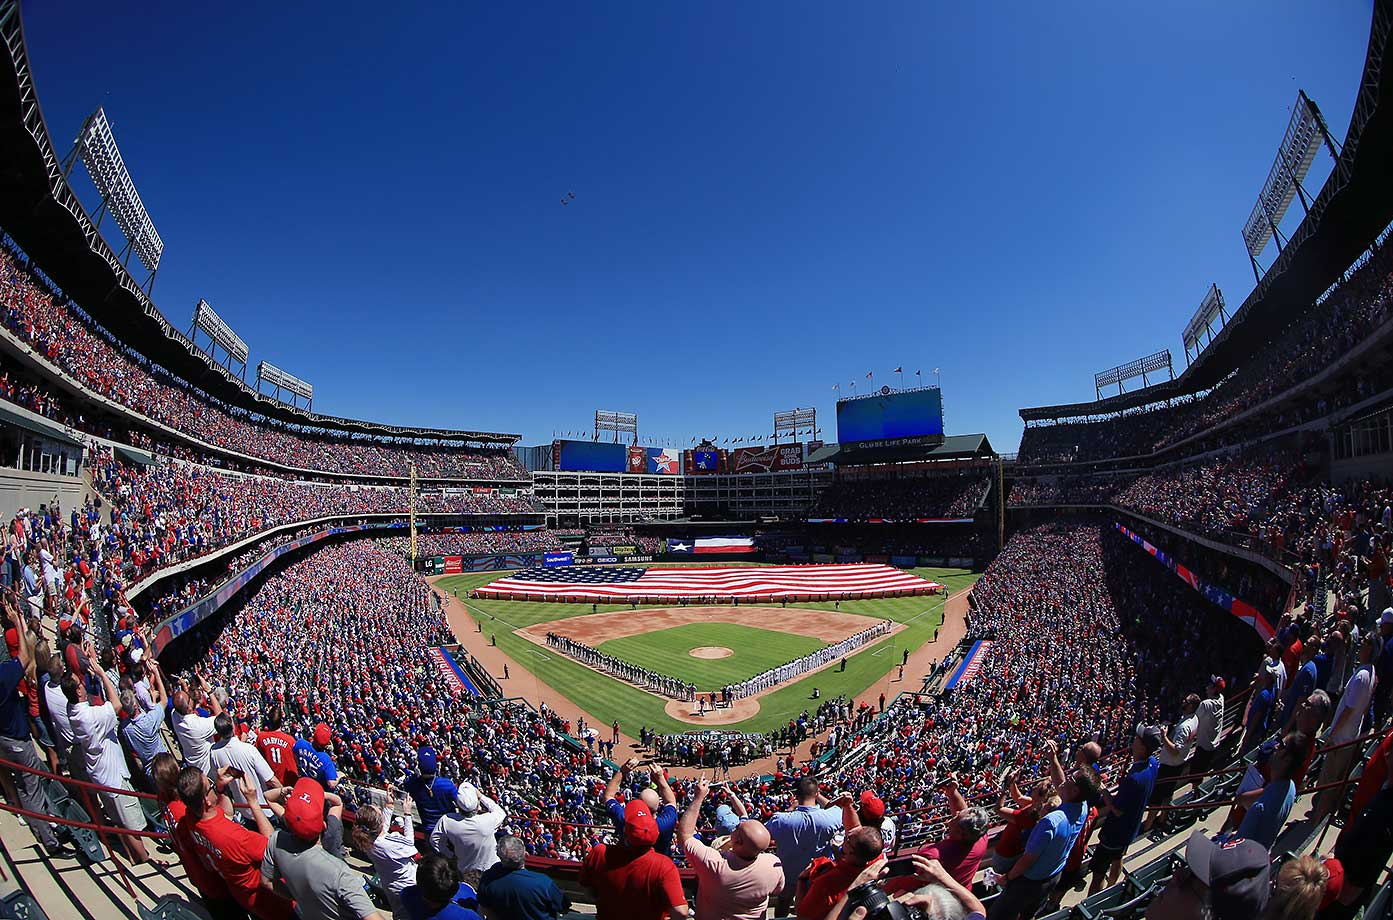 Fans look on as two fighter jets fly over during the National Anthem before the Texas Rangers take on the Seattle Mariners.